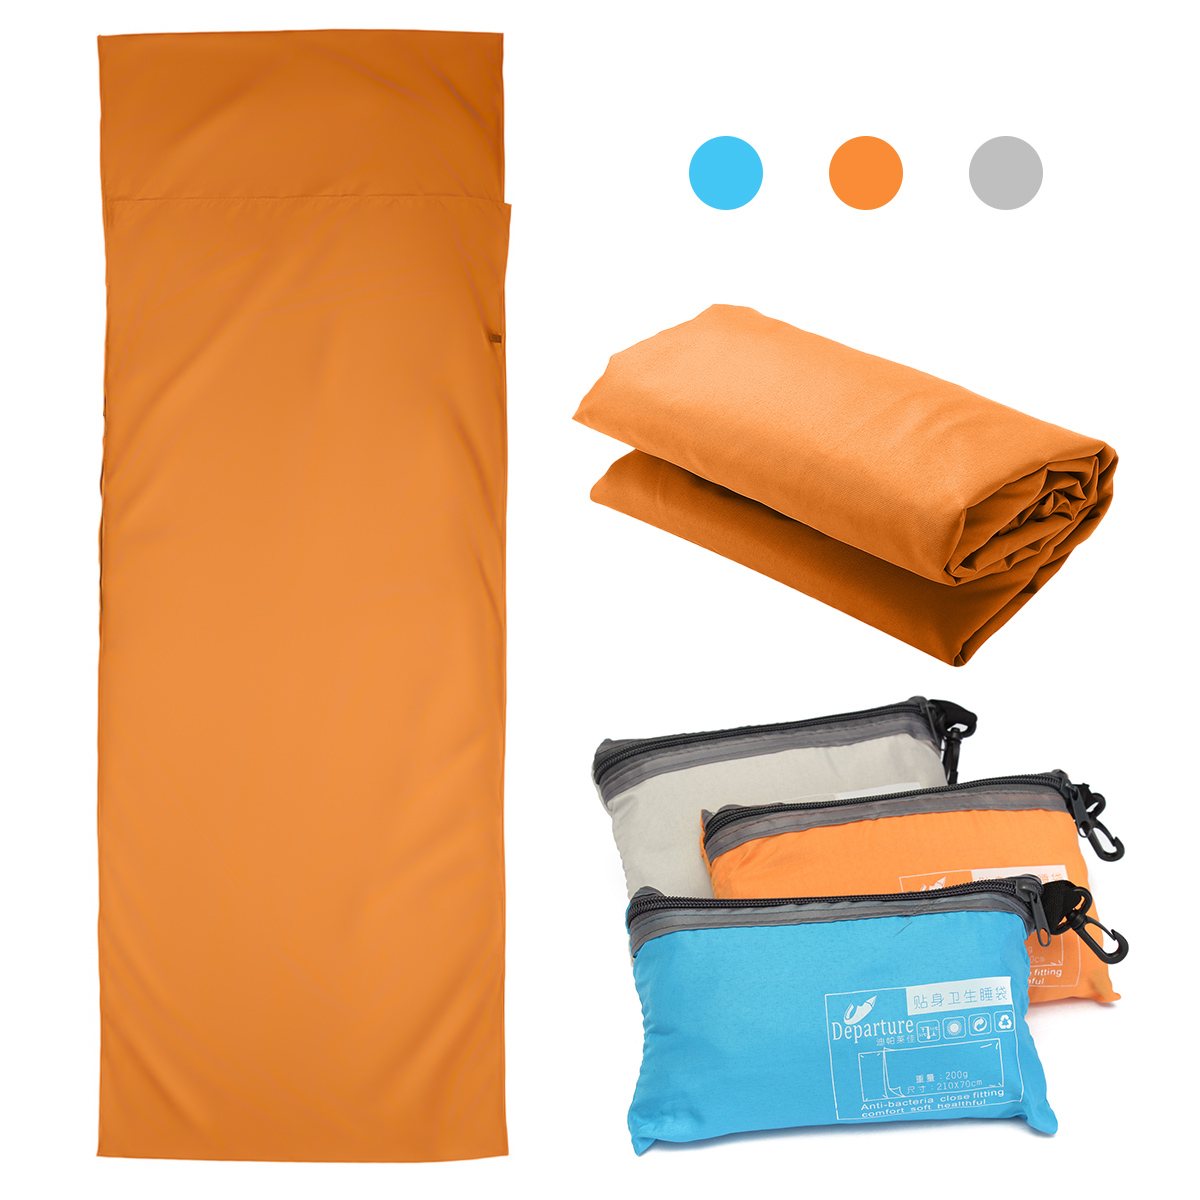 Travel Camping Sheet, Envelope Sleeping Bag Antimicrobial Soft Liner - Compact Sleep Sheet with Lightweight Carry Bag, 210 x 70 cm